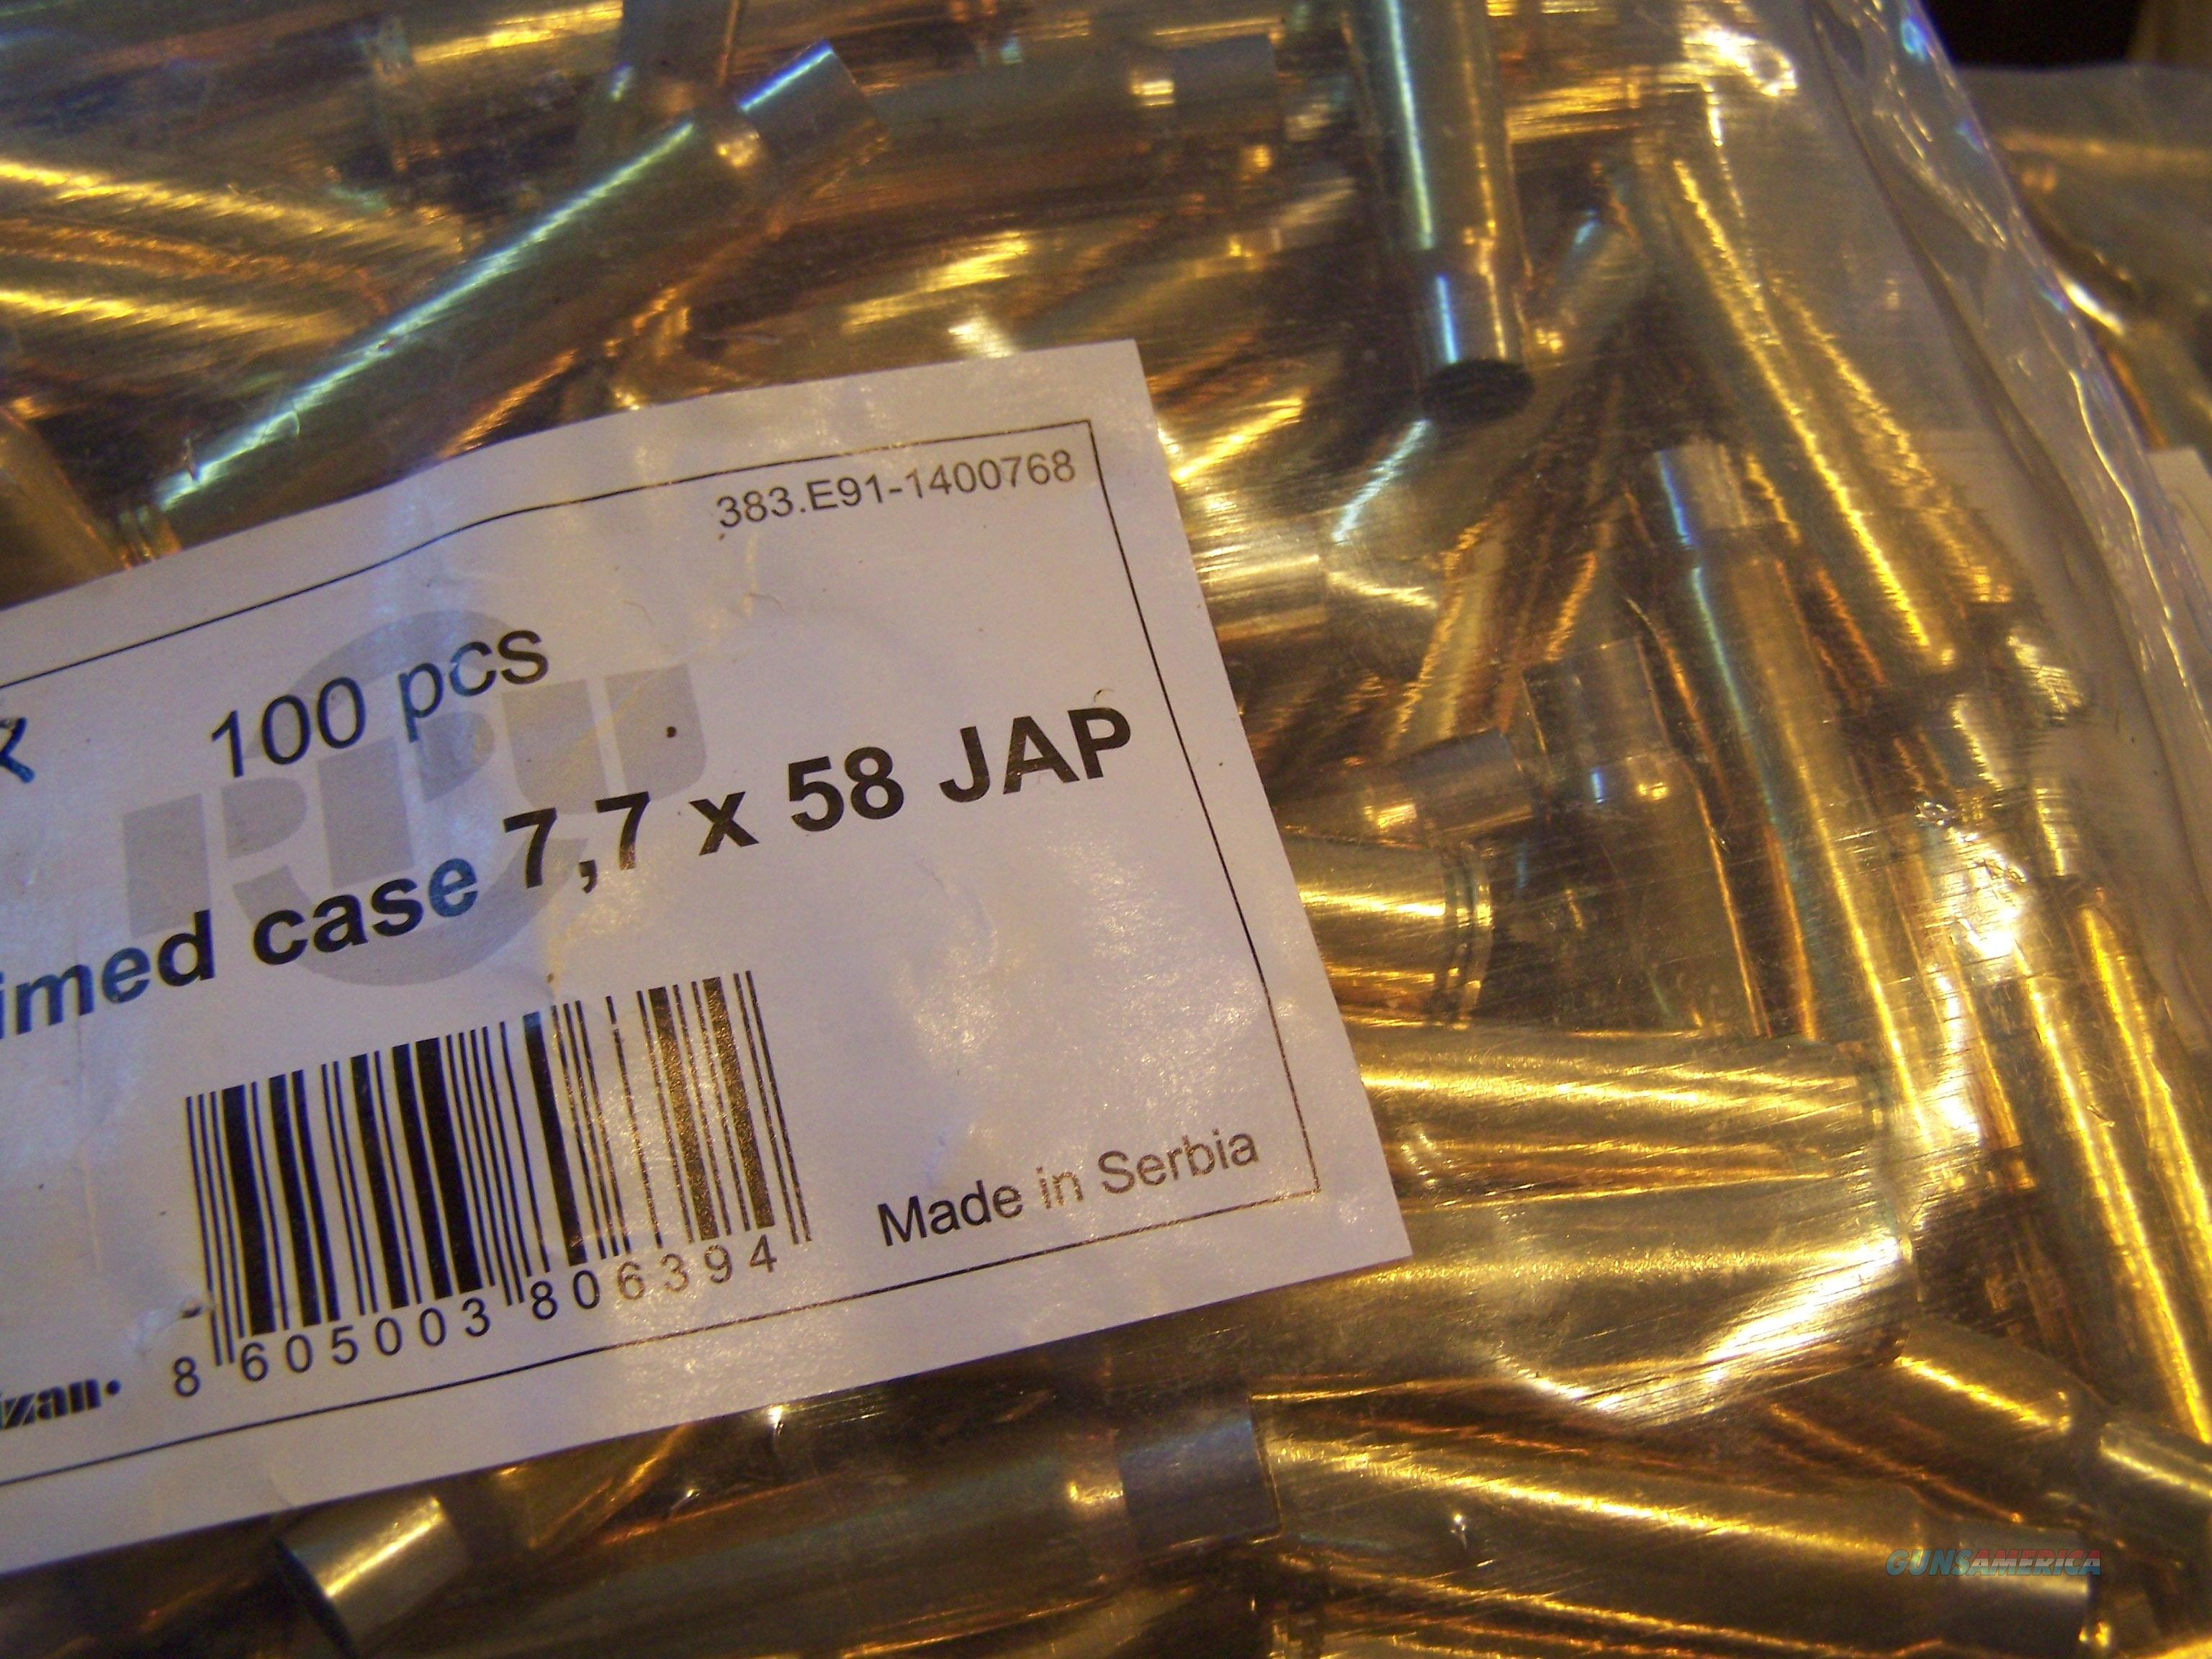 7.7 Jap Brass new 200 pcs.   Non-Guns > Reloading > Components > Brass